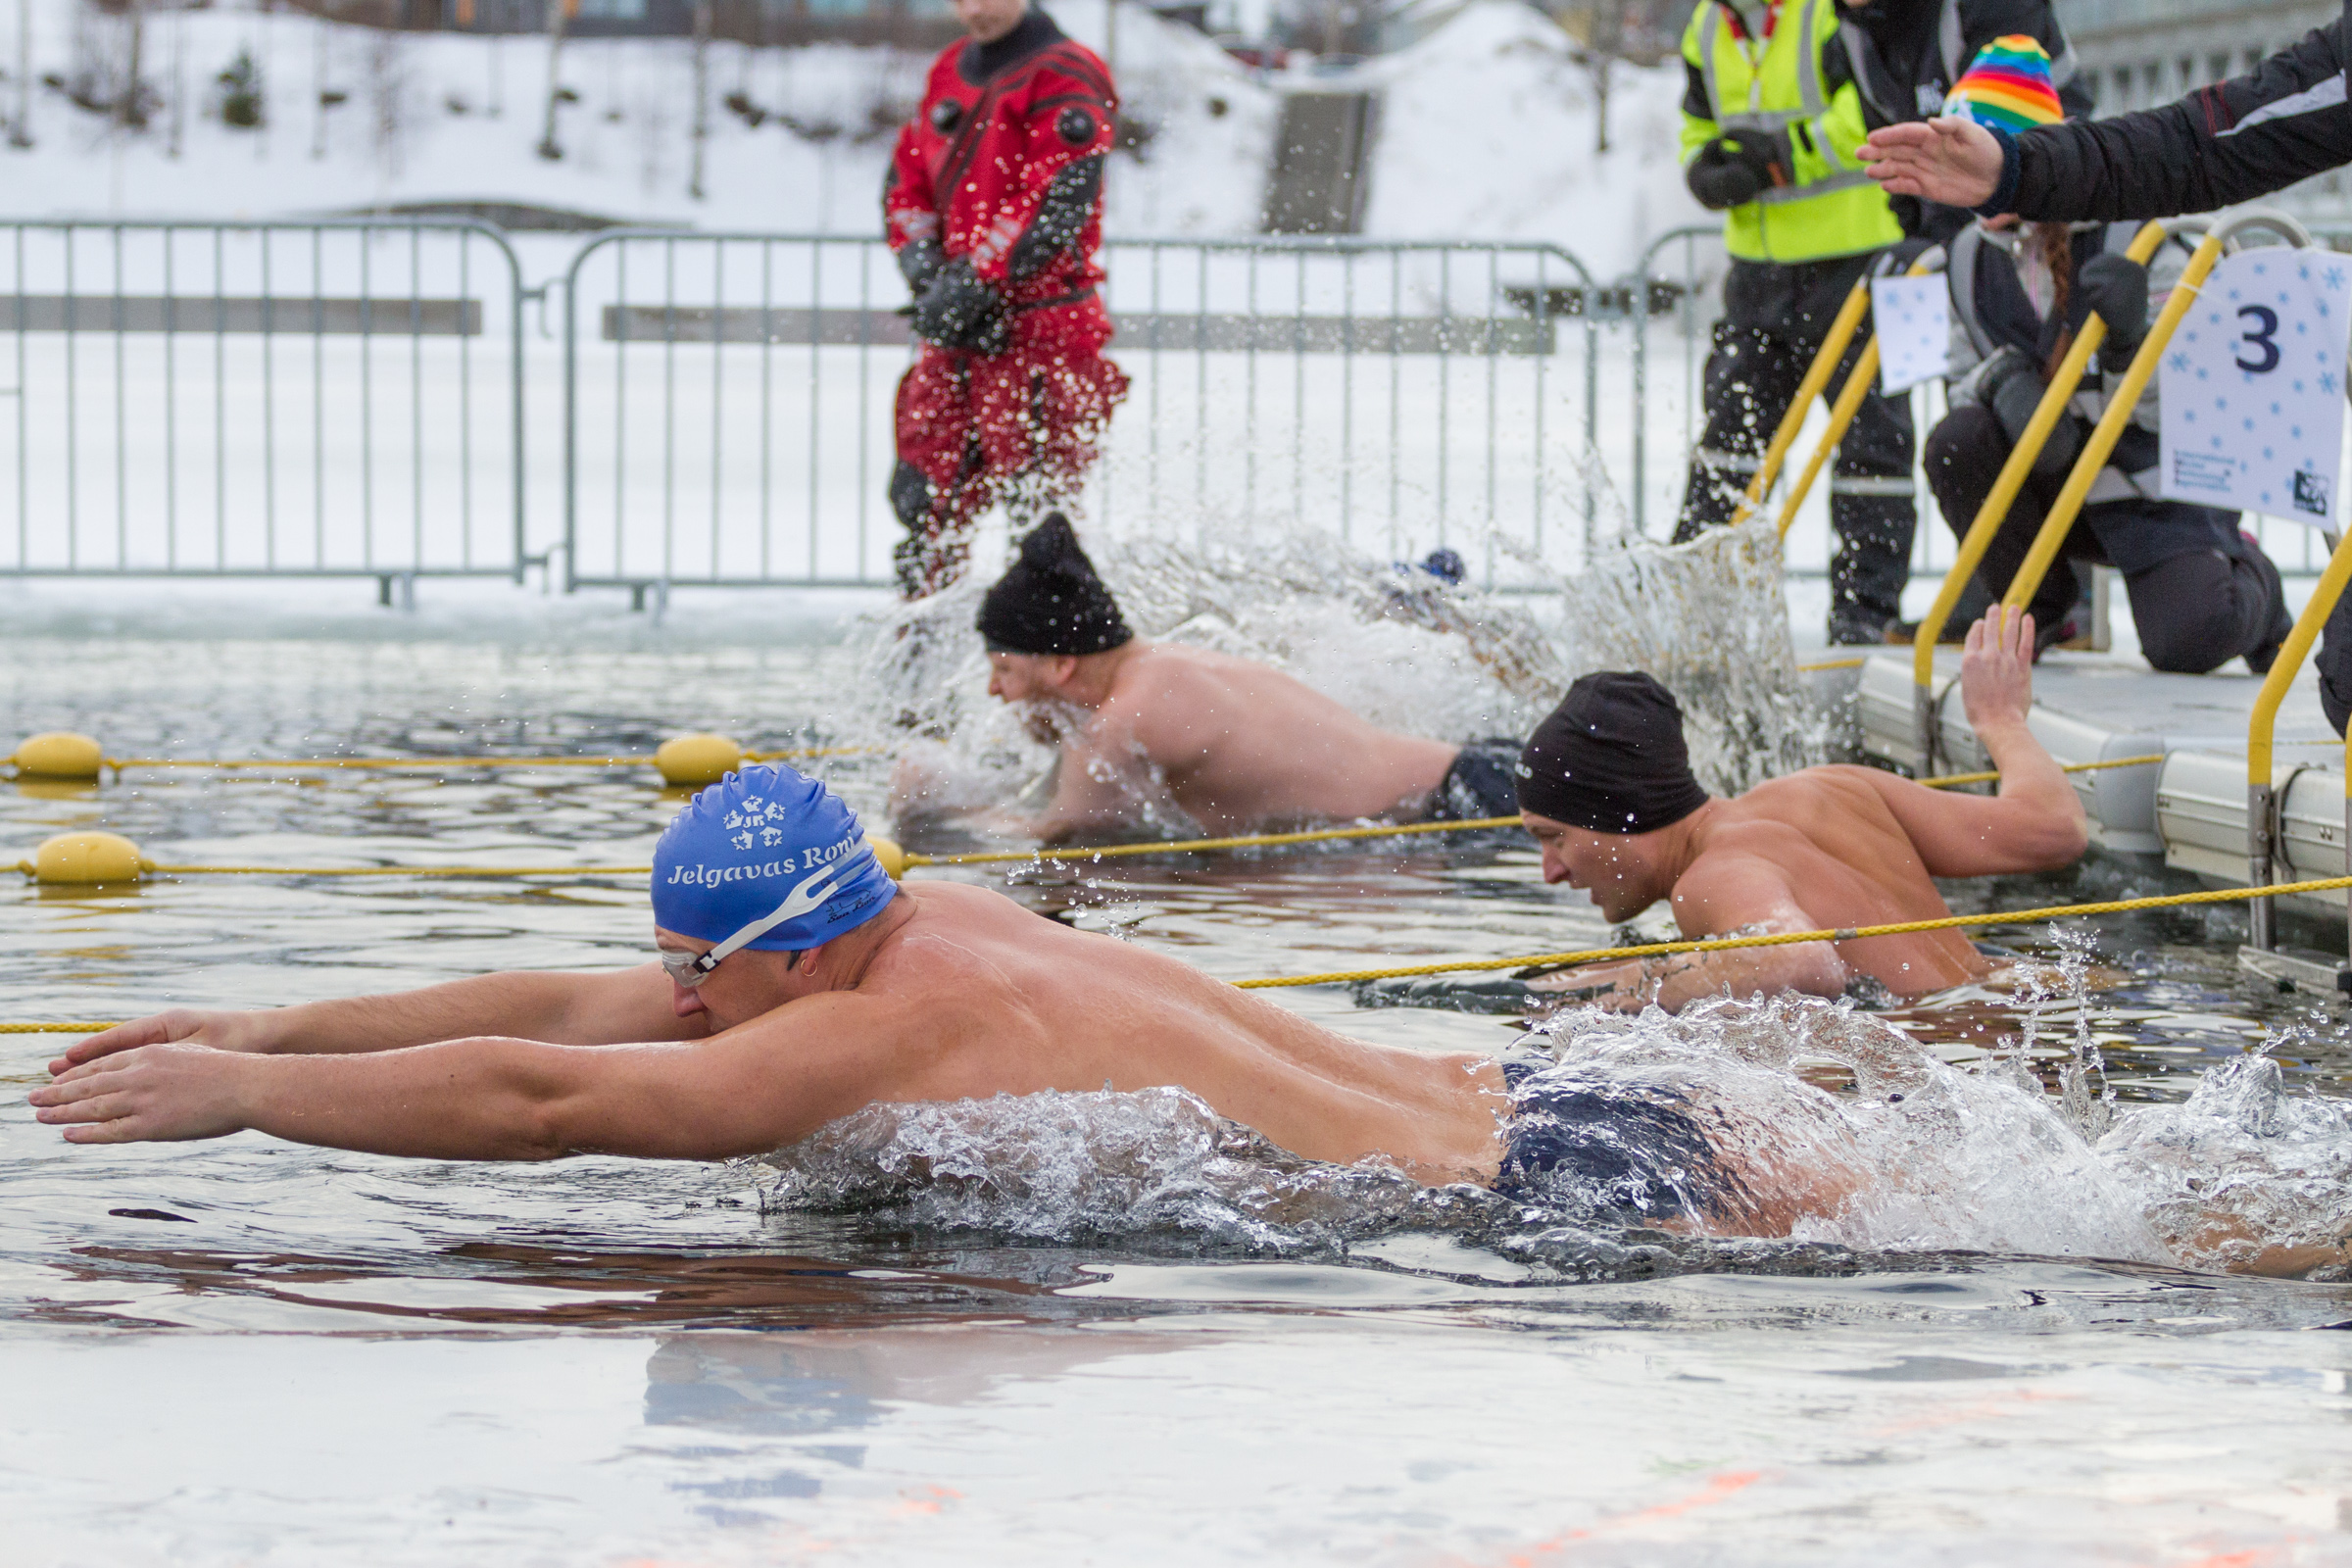 The 8th Scandinavian Winter Swimming Championships